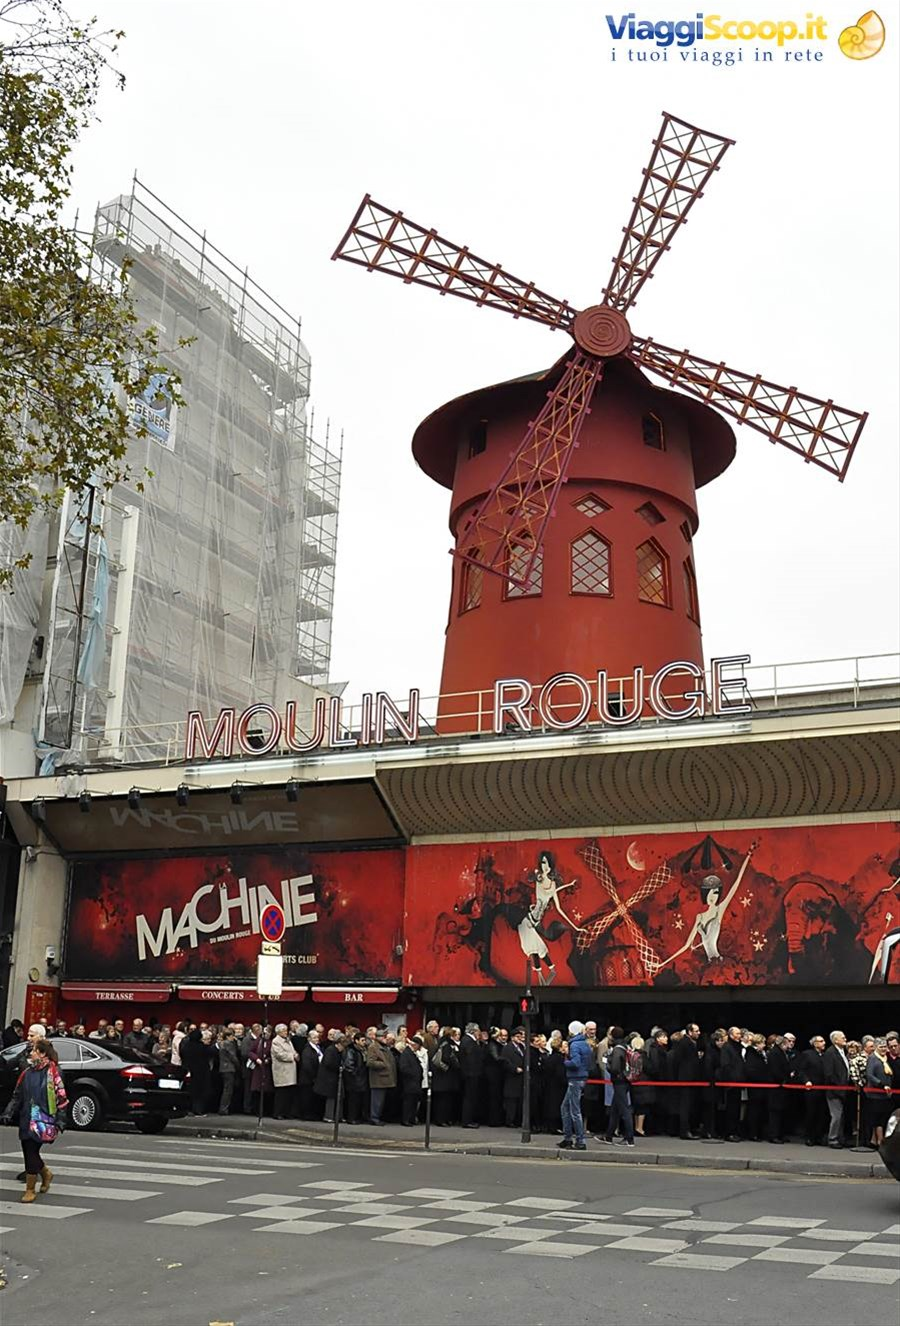 Pigalle - Moulin Rouge FRANCIA